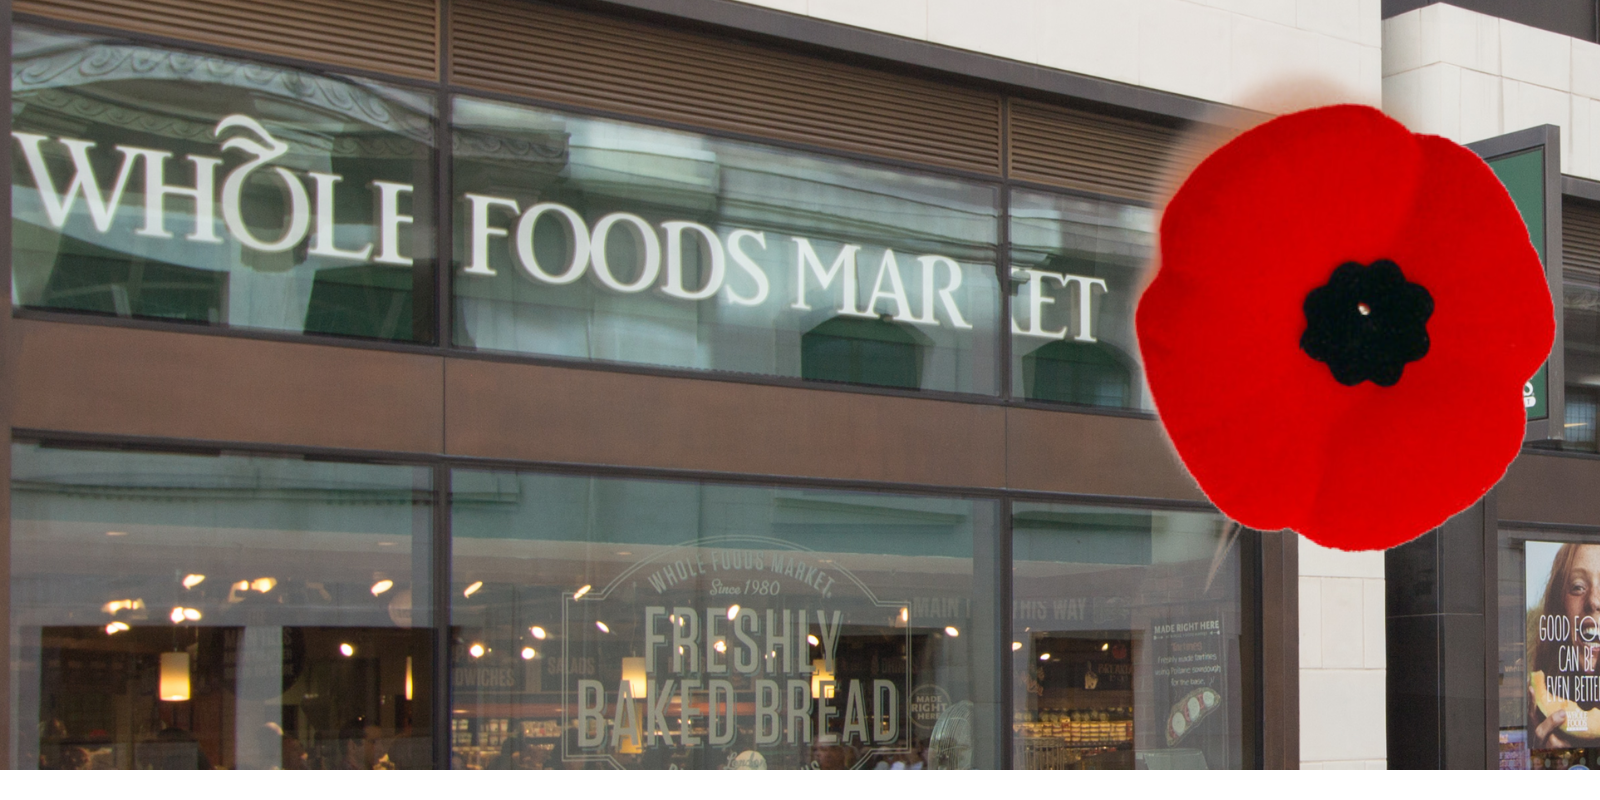 BREAKING: Whole Foods employees will now be able to wear poppies